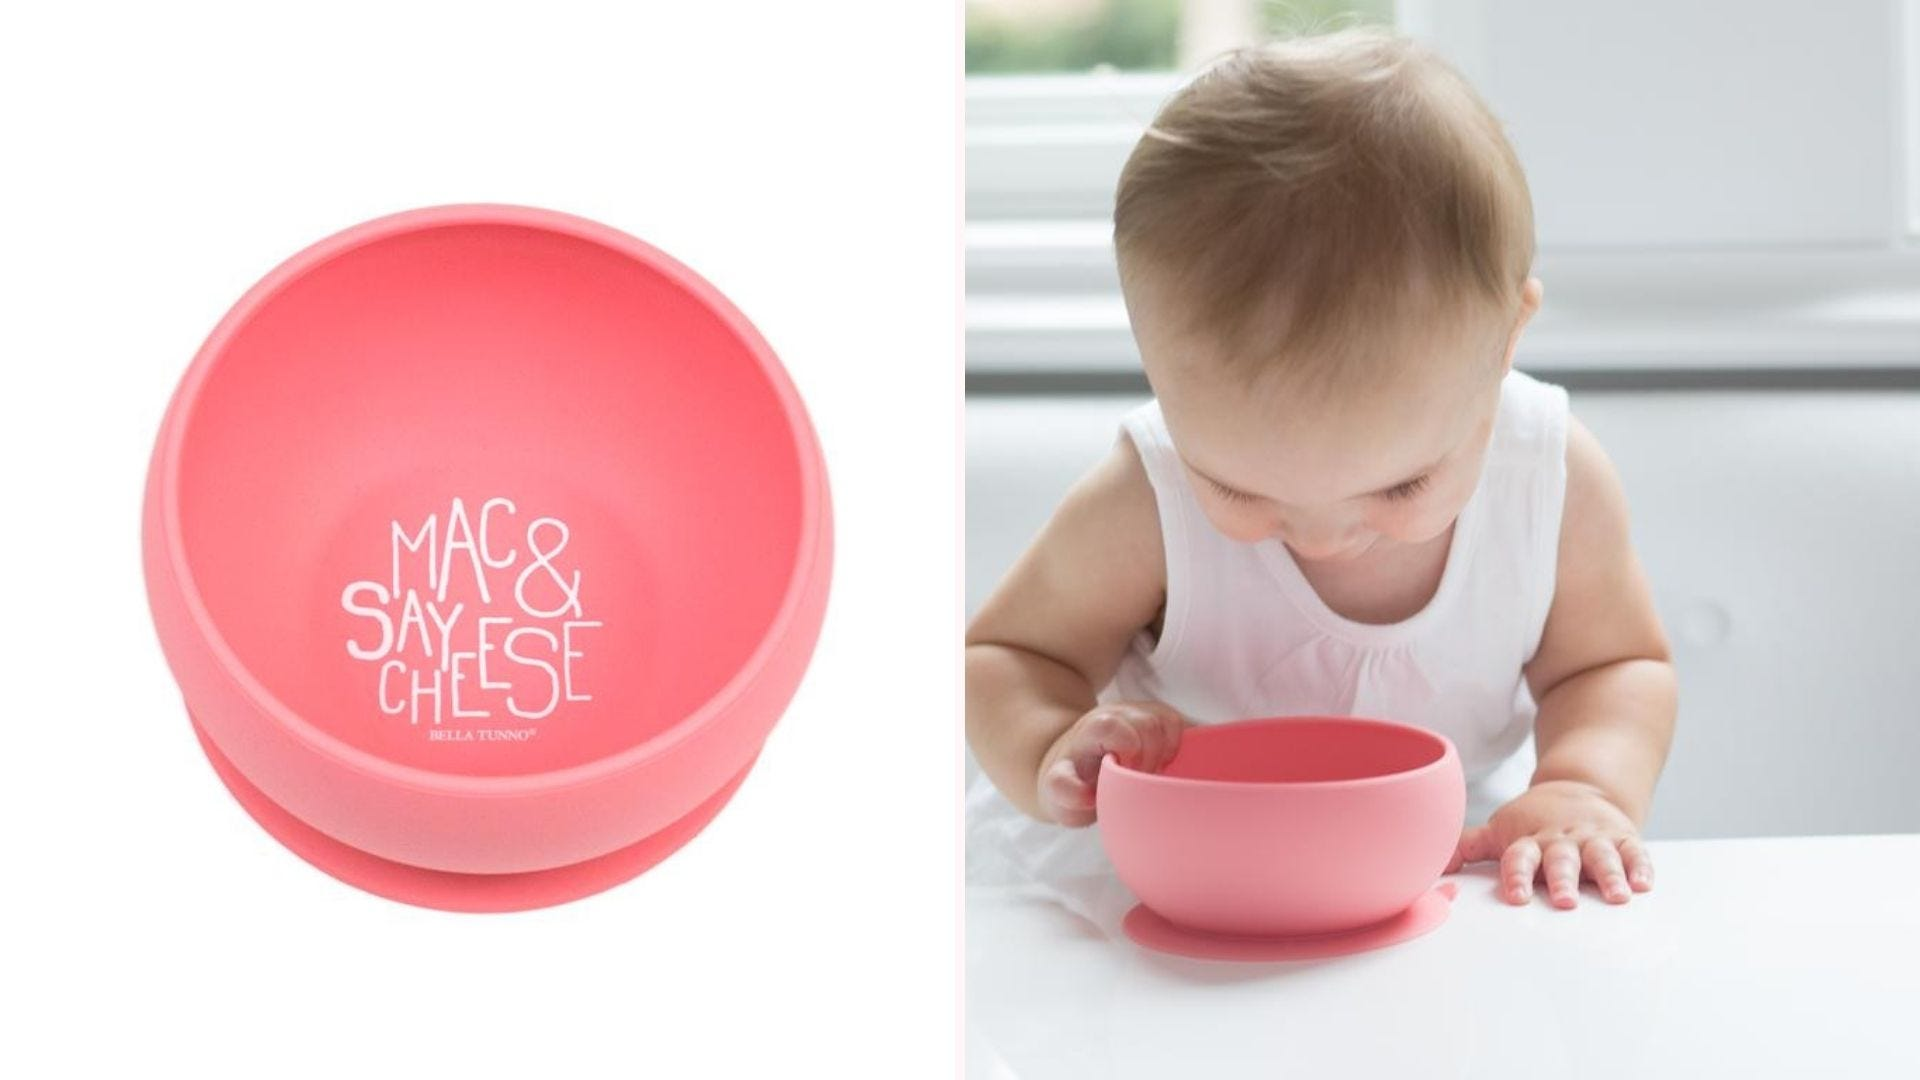 The Mac & Say Cheese bowl and a toddler looking inside it.